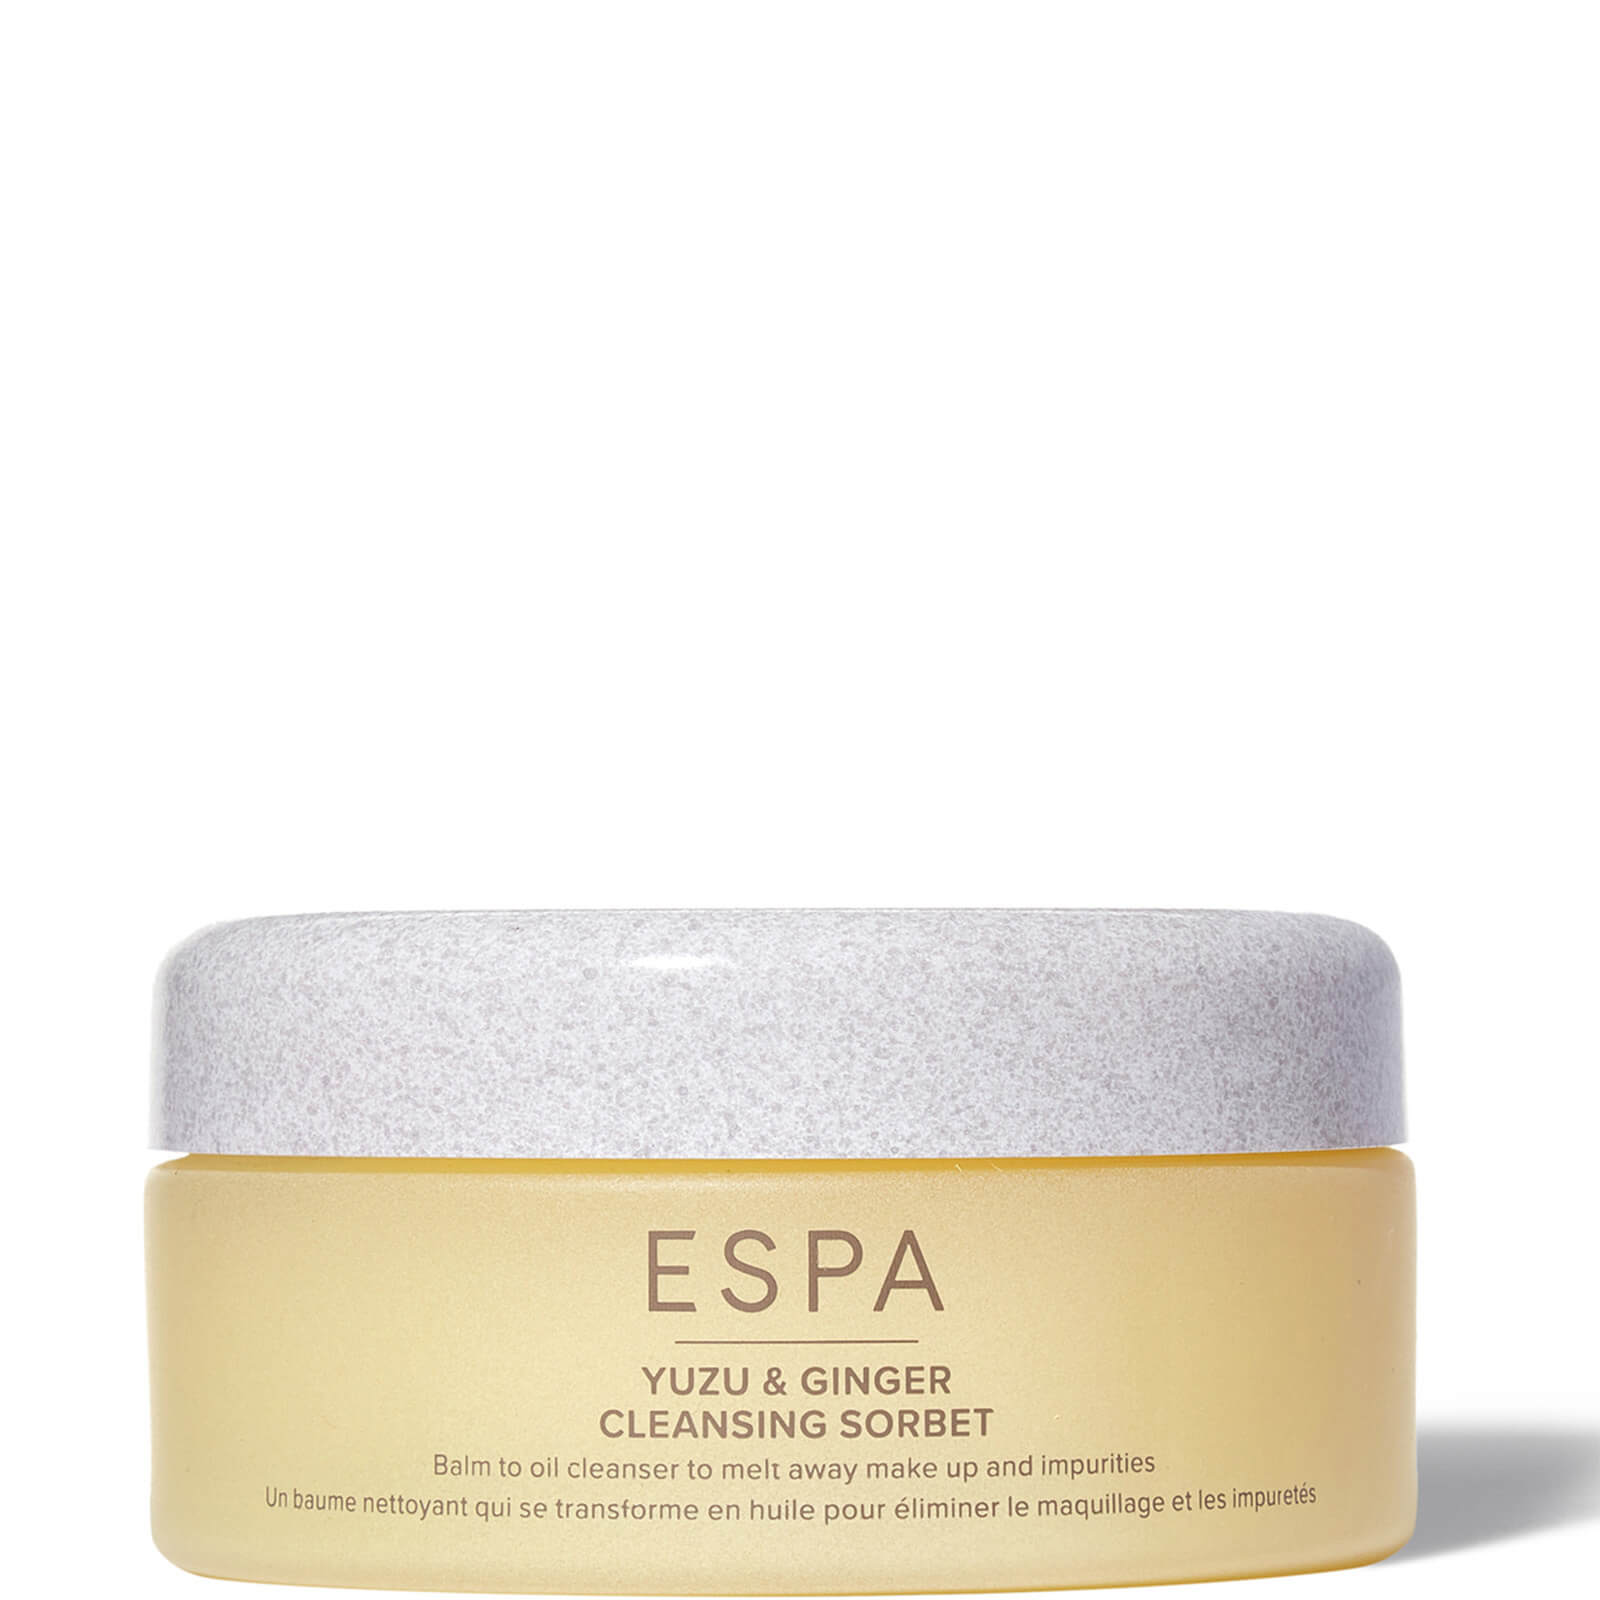 Espa YUZU & GINGER CLEANSING SORBET - RETAIL